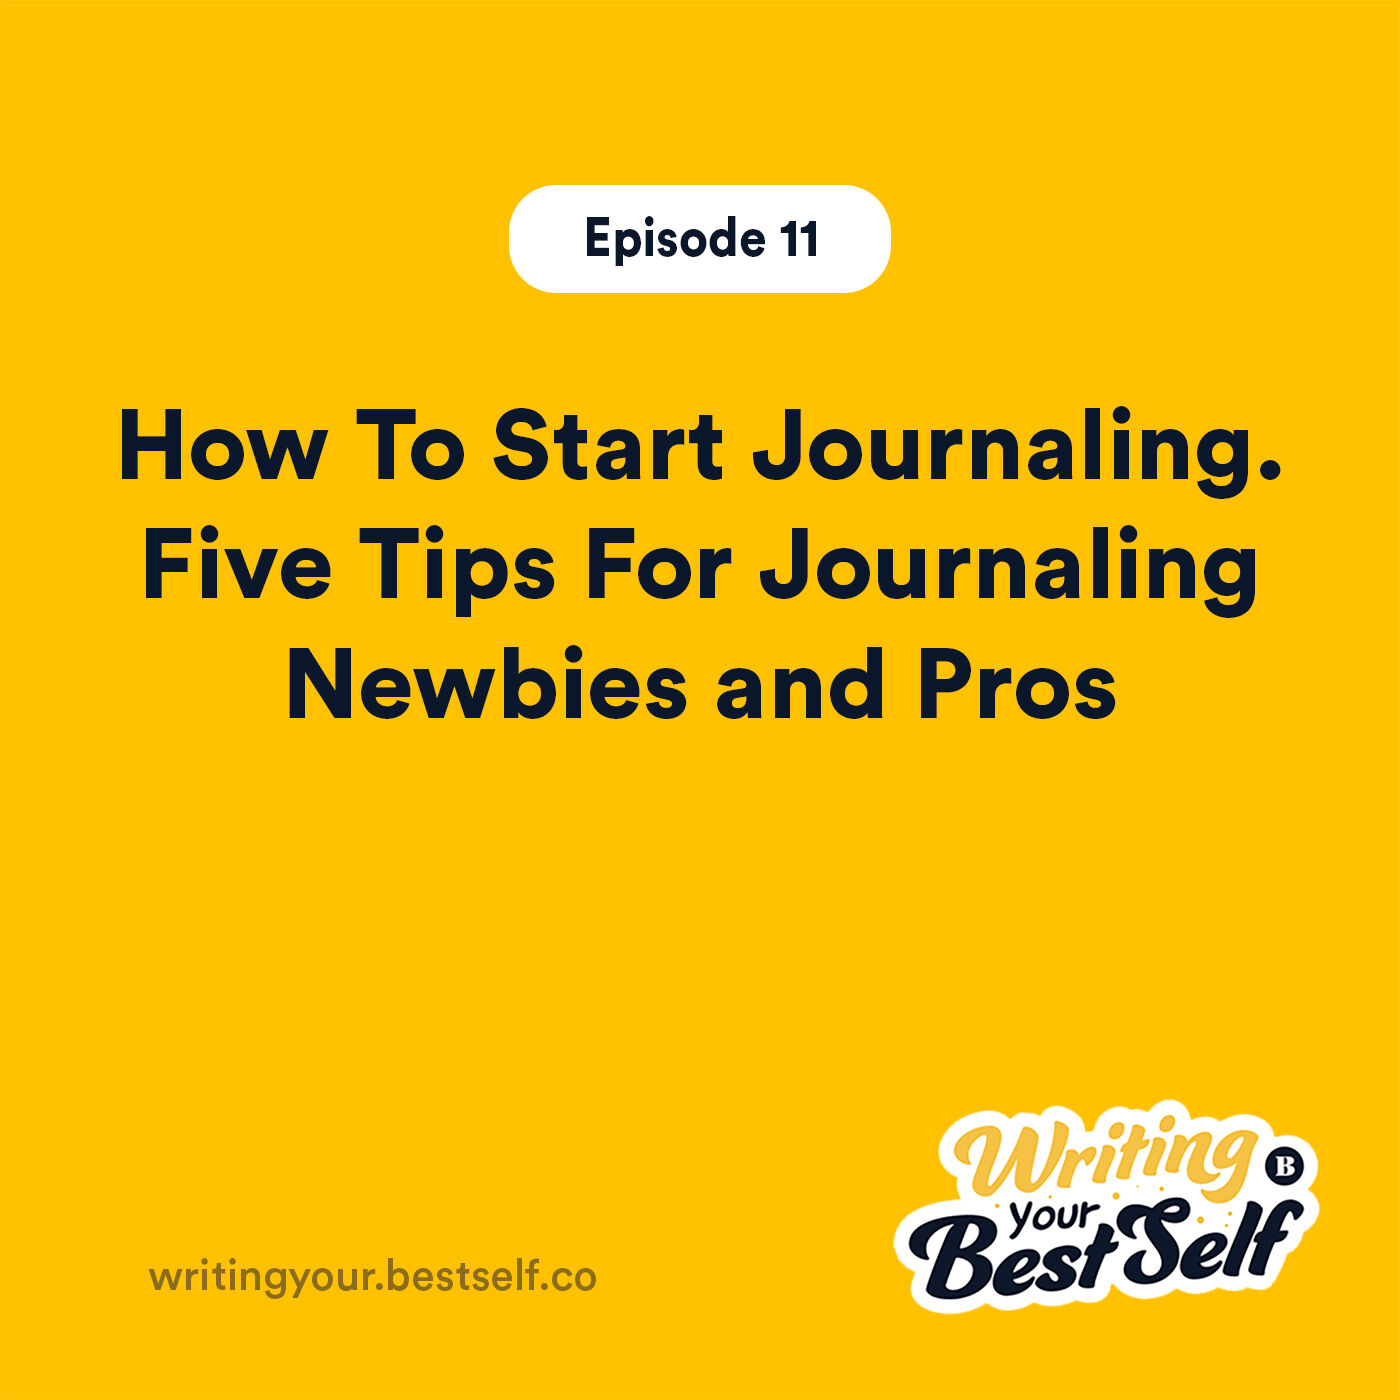 How To Start Journaling. Five Tips For Journaling Newbies and Pros